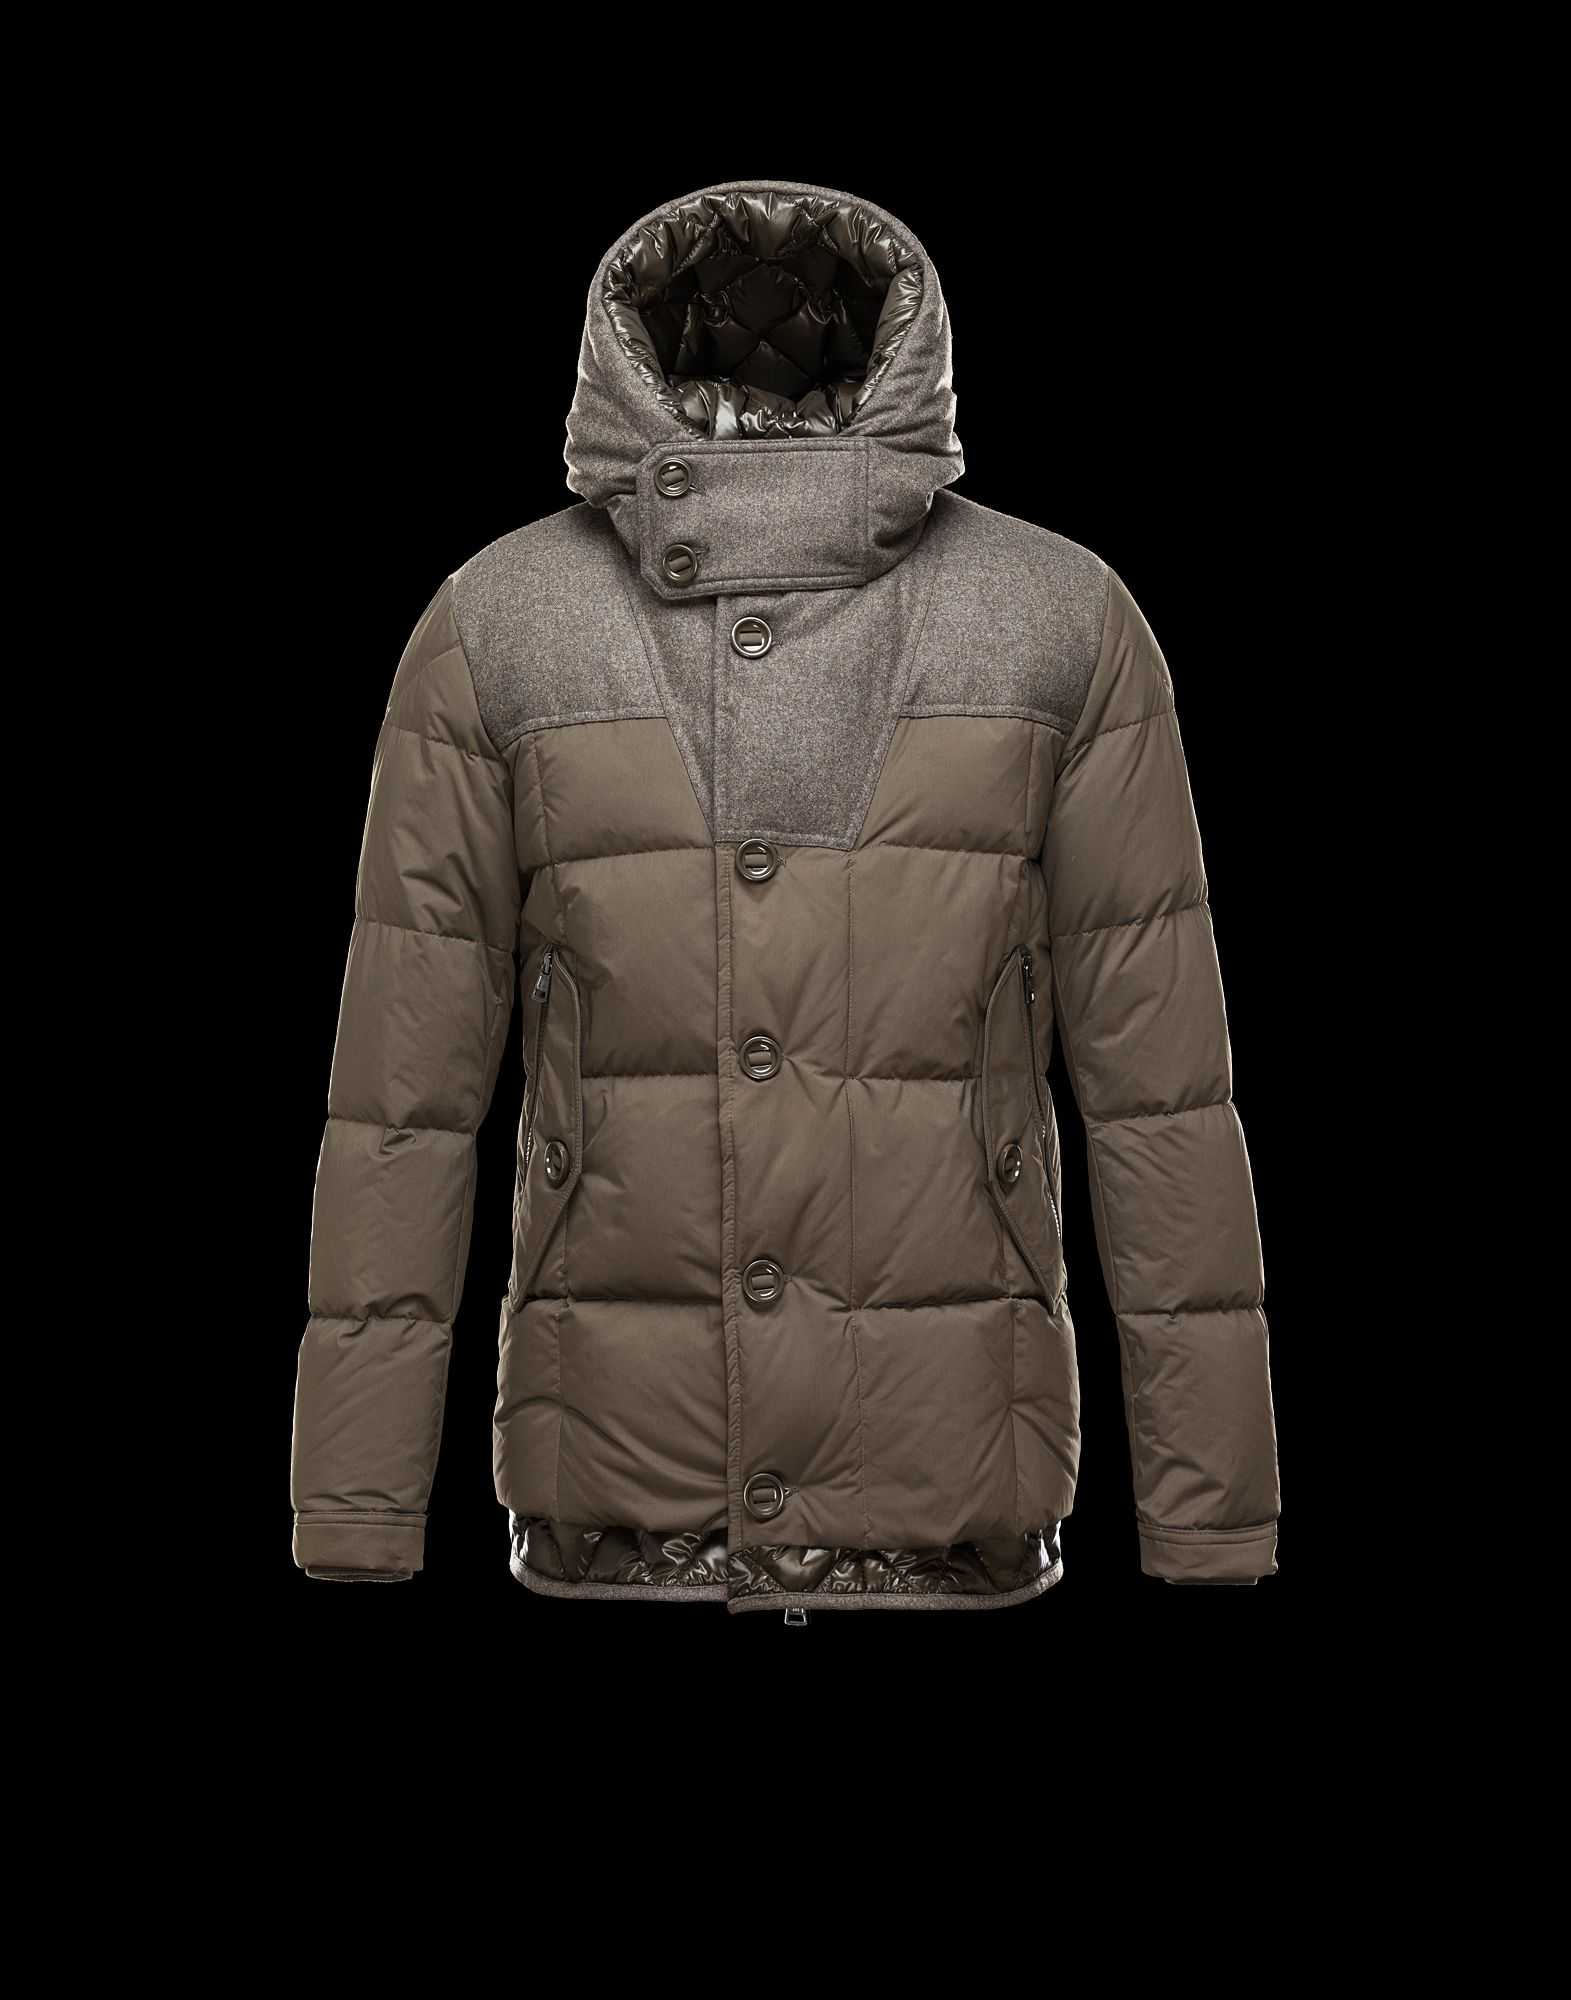 Moncler PYRENEES Jackets For Mens Hooded Army Green